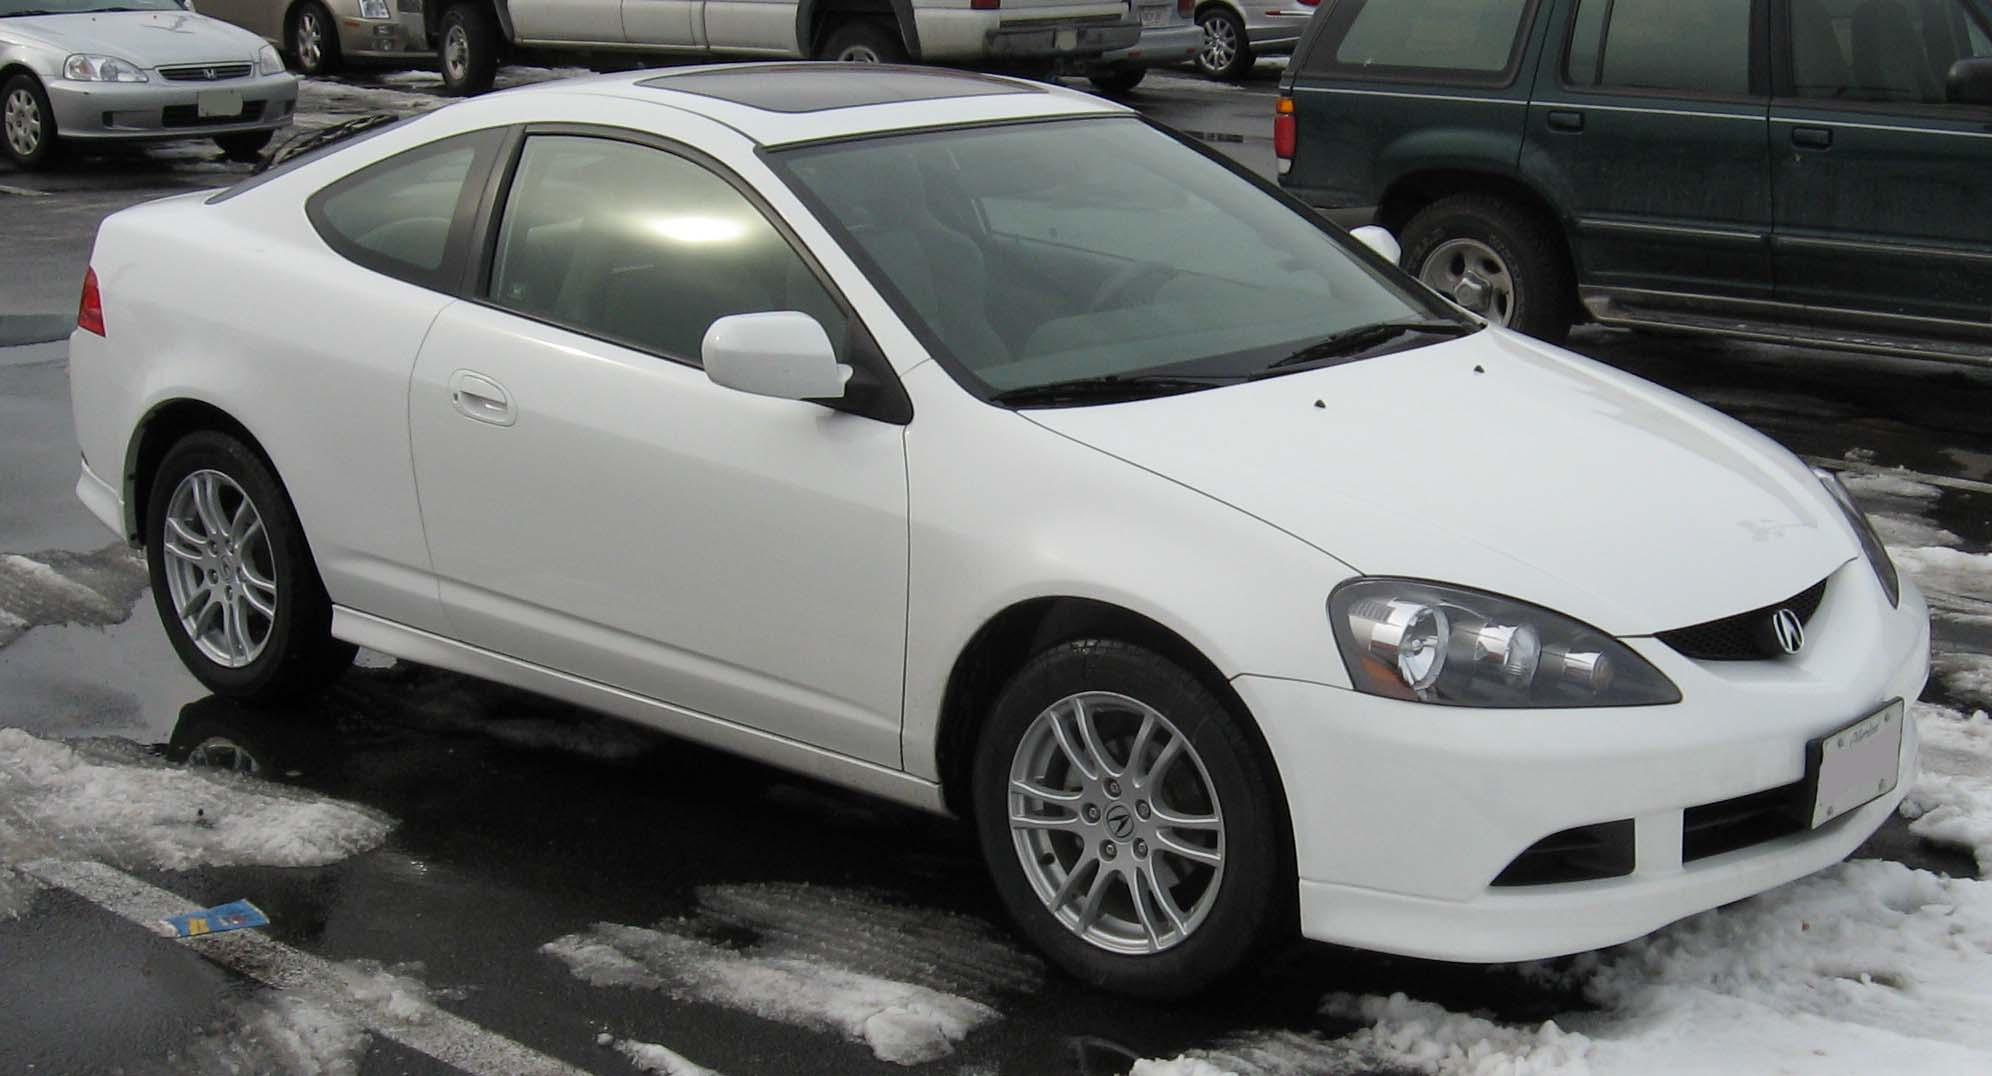 File:2004-05 Acura RSX.jpg - Wikimedia Commons